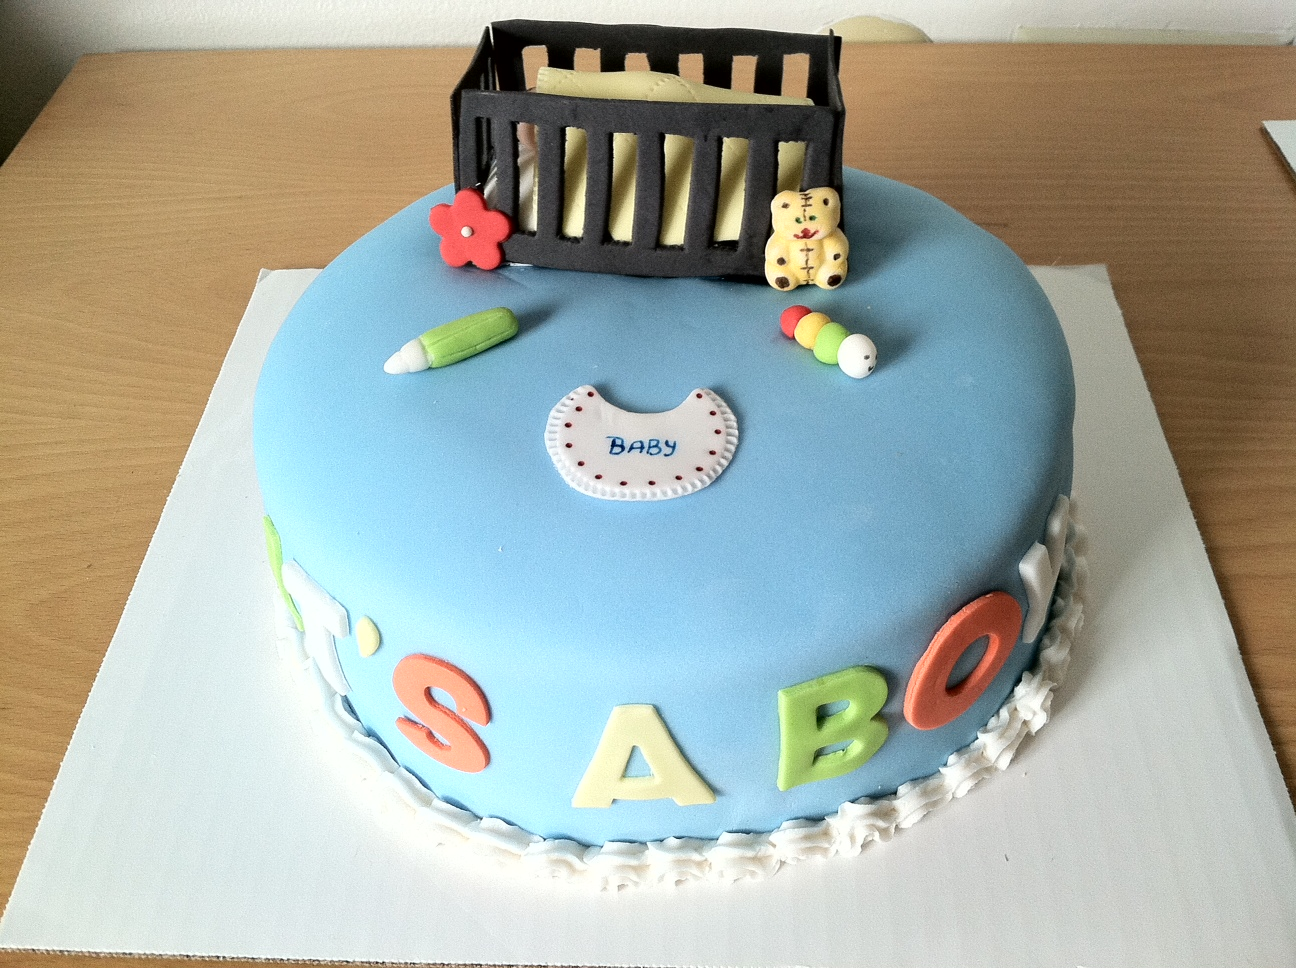 Cake Decorating Ideas For Baby Shower : Baby Shower Cakes: Baby Boy Shower Cake Decorating Ideas